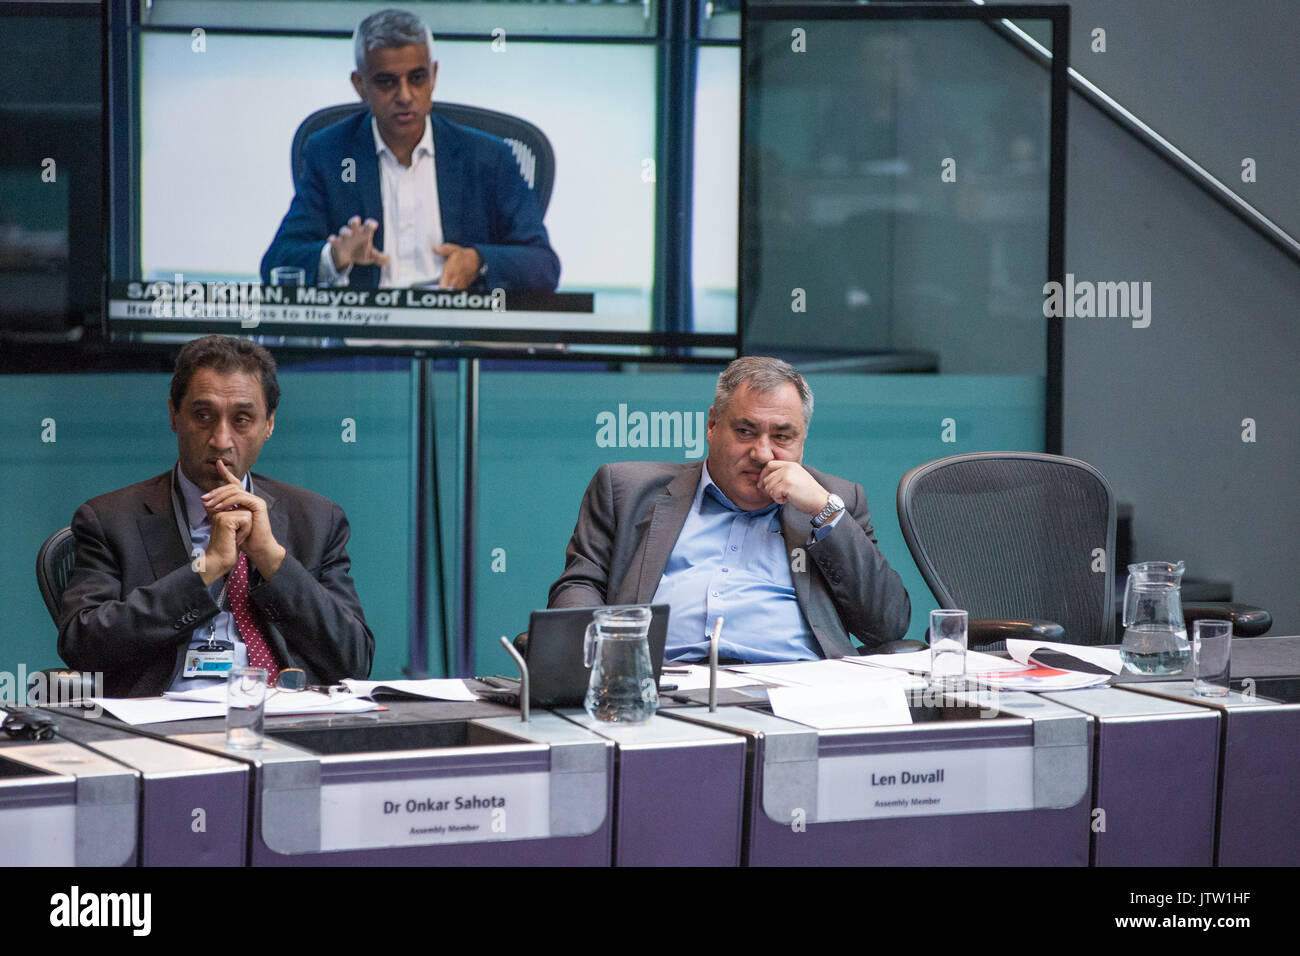 London, UK. 10th August, 2017. London Assembly Members Dr Onkar Sahota and Len Duvall listen to Mayor of London Sadiq Khan responding to questions during Mayor's Question Time at City Hall. Among topics discussed were: acid attacks, social housing, expenditure on fire and police services, 4G coverage on underground trains and noise from overnight underground trains. Credit: Mark Kerrison/Alamy Live News - Stock Image